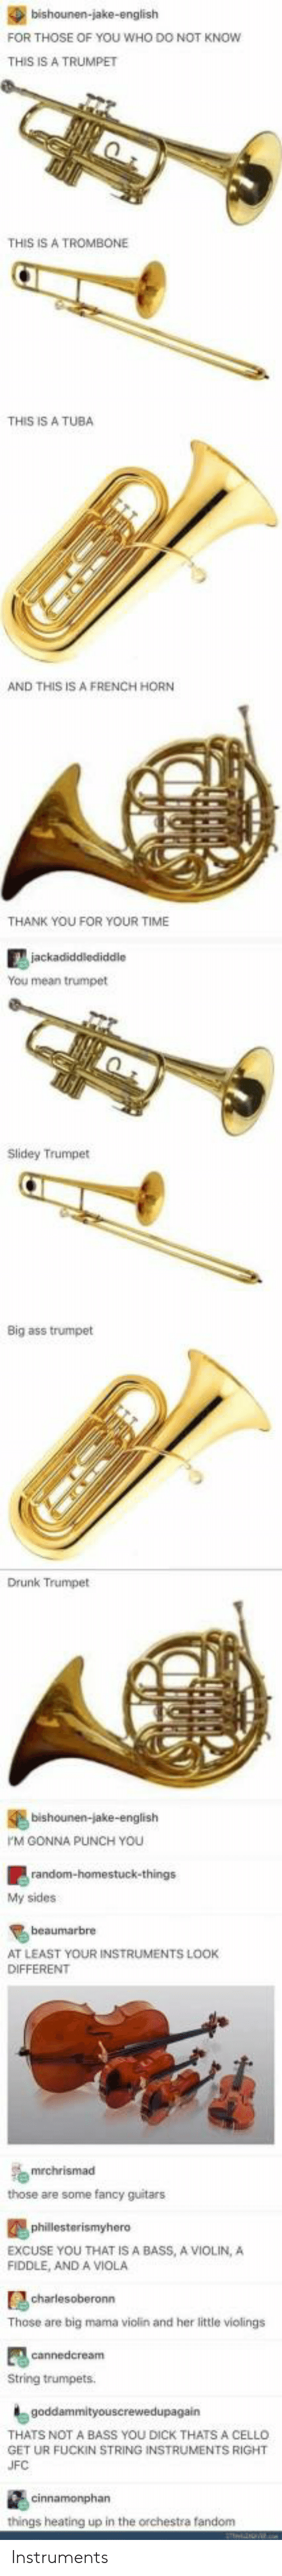 viola: FOR THOSE OF YOU WHO DO NOT KNOw  THIS IS A TRUMPET  THIS IS A TROMBONE  THIS IS A TUBA  AND THIS IS A FRENCH HORN  THANK YOU FOR YOUR TIME  You mean trumpet  Slidey Trumpet  Big ass trumpet  Drunk Trumpet  M GONNA PUNCH YOU  My sides  AT LEAST YOUR INSTRUMENTS LOOK  DIFFERENT  those are some fancy guitars  EXCUSE YOU THAT IS A BASS, A VIOLIN,A  FIDDLE, AND A VIOLA  Those are big mama violin and her little violings  String trumpets  THATS NOT A BASS YOU DICK THATS A CELLO  GET UR FUCKIN STRING INSTRUMENTS RIGHT  things heating up in the orchestra fandom Instruments